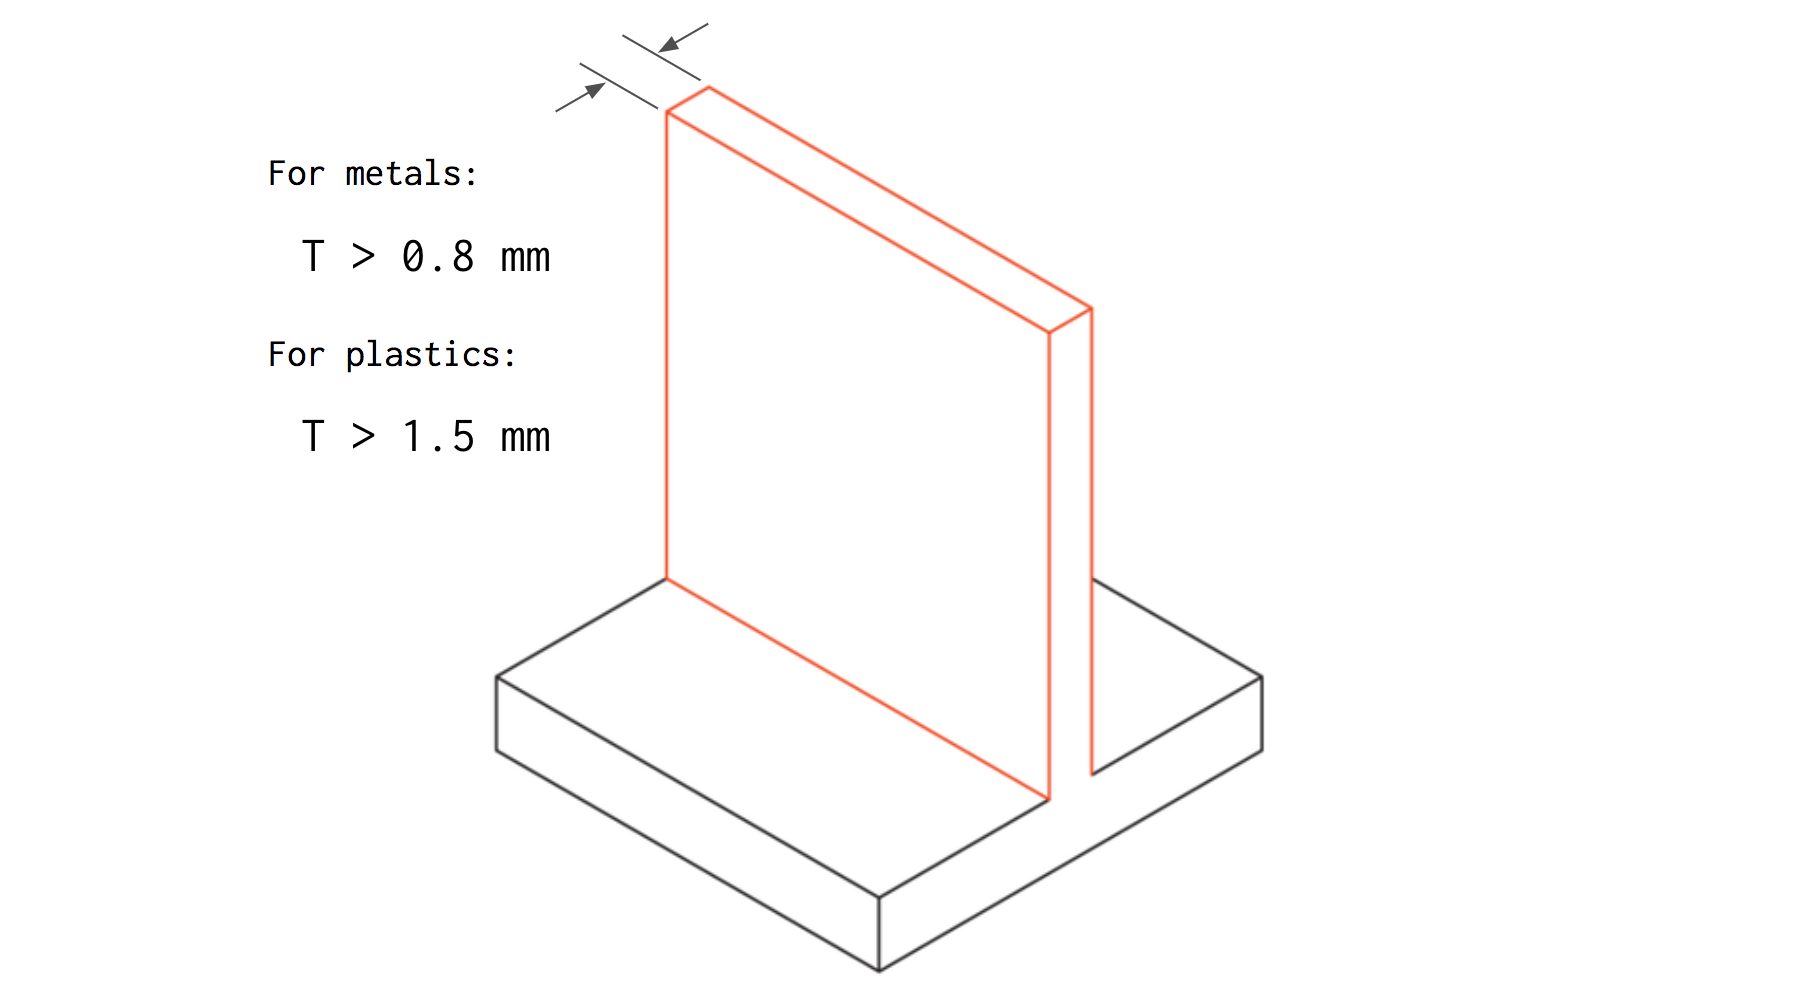 Increase the thickness of thin walls to reduce the machining time